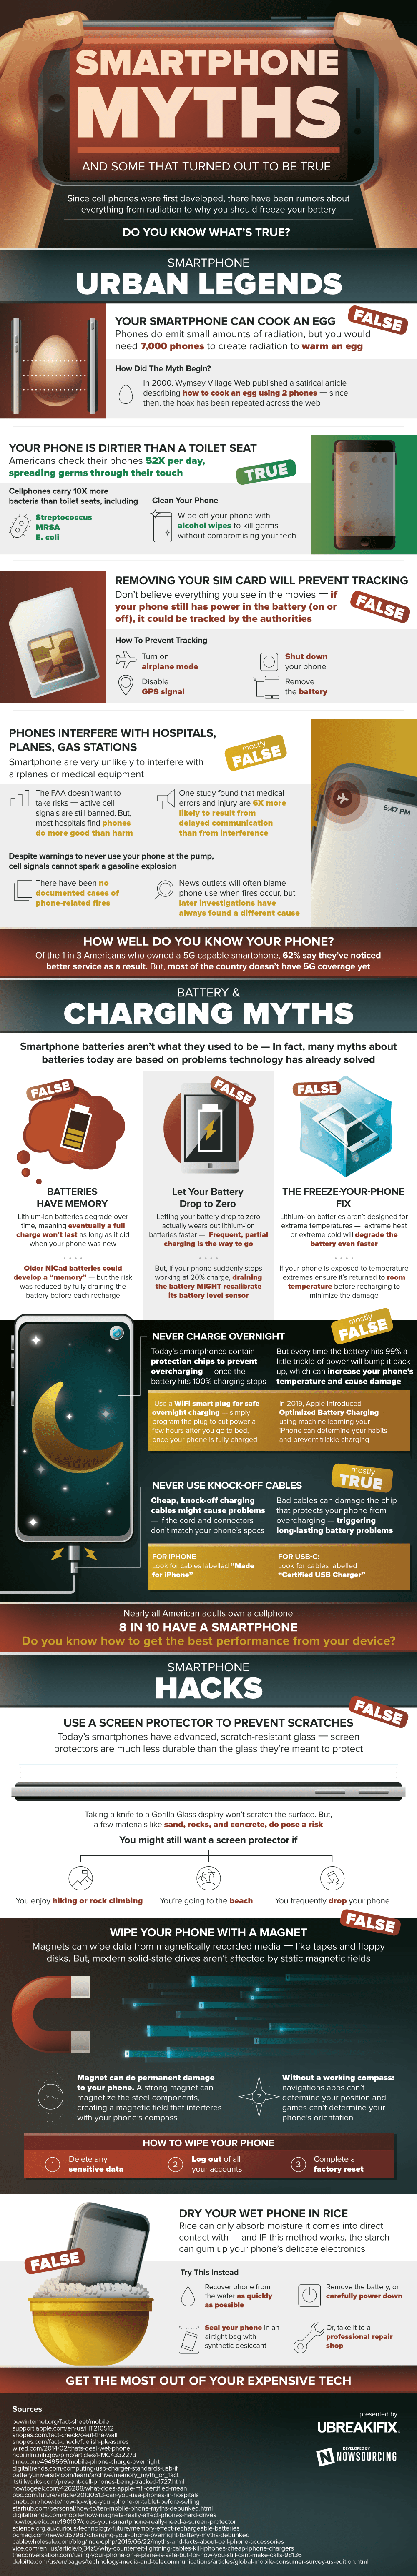 smartphone urban legends - Get The Facts about Smartphone Myths